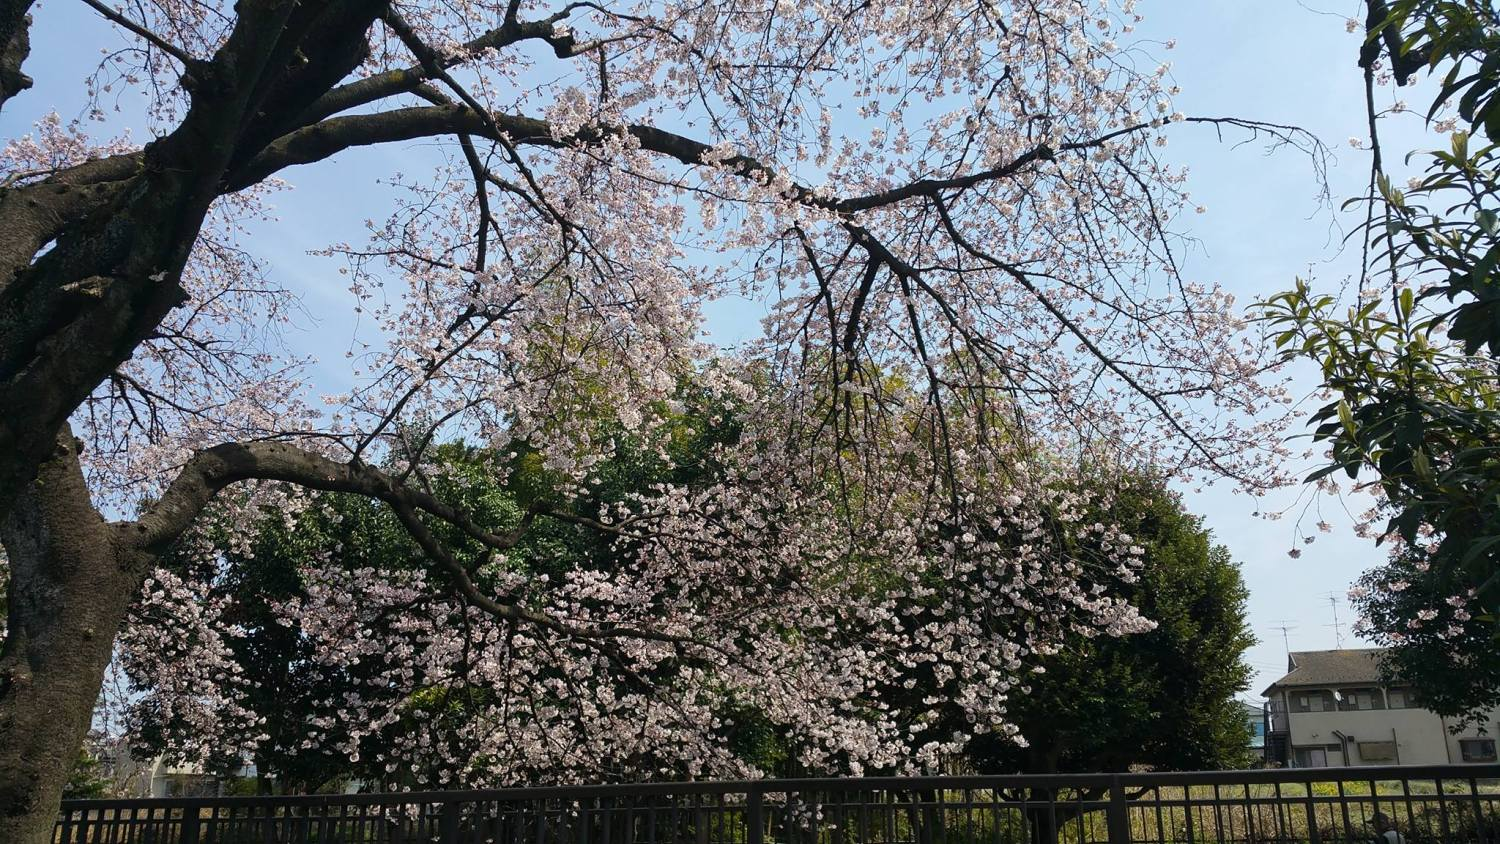 Cherry blossoms of Oizumi Igashira Park are in full bloom